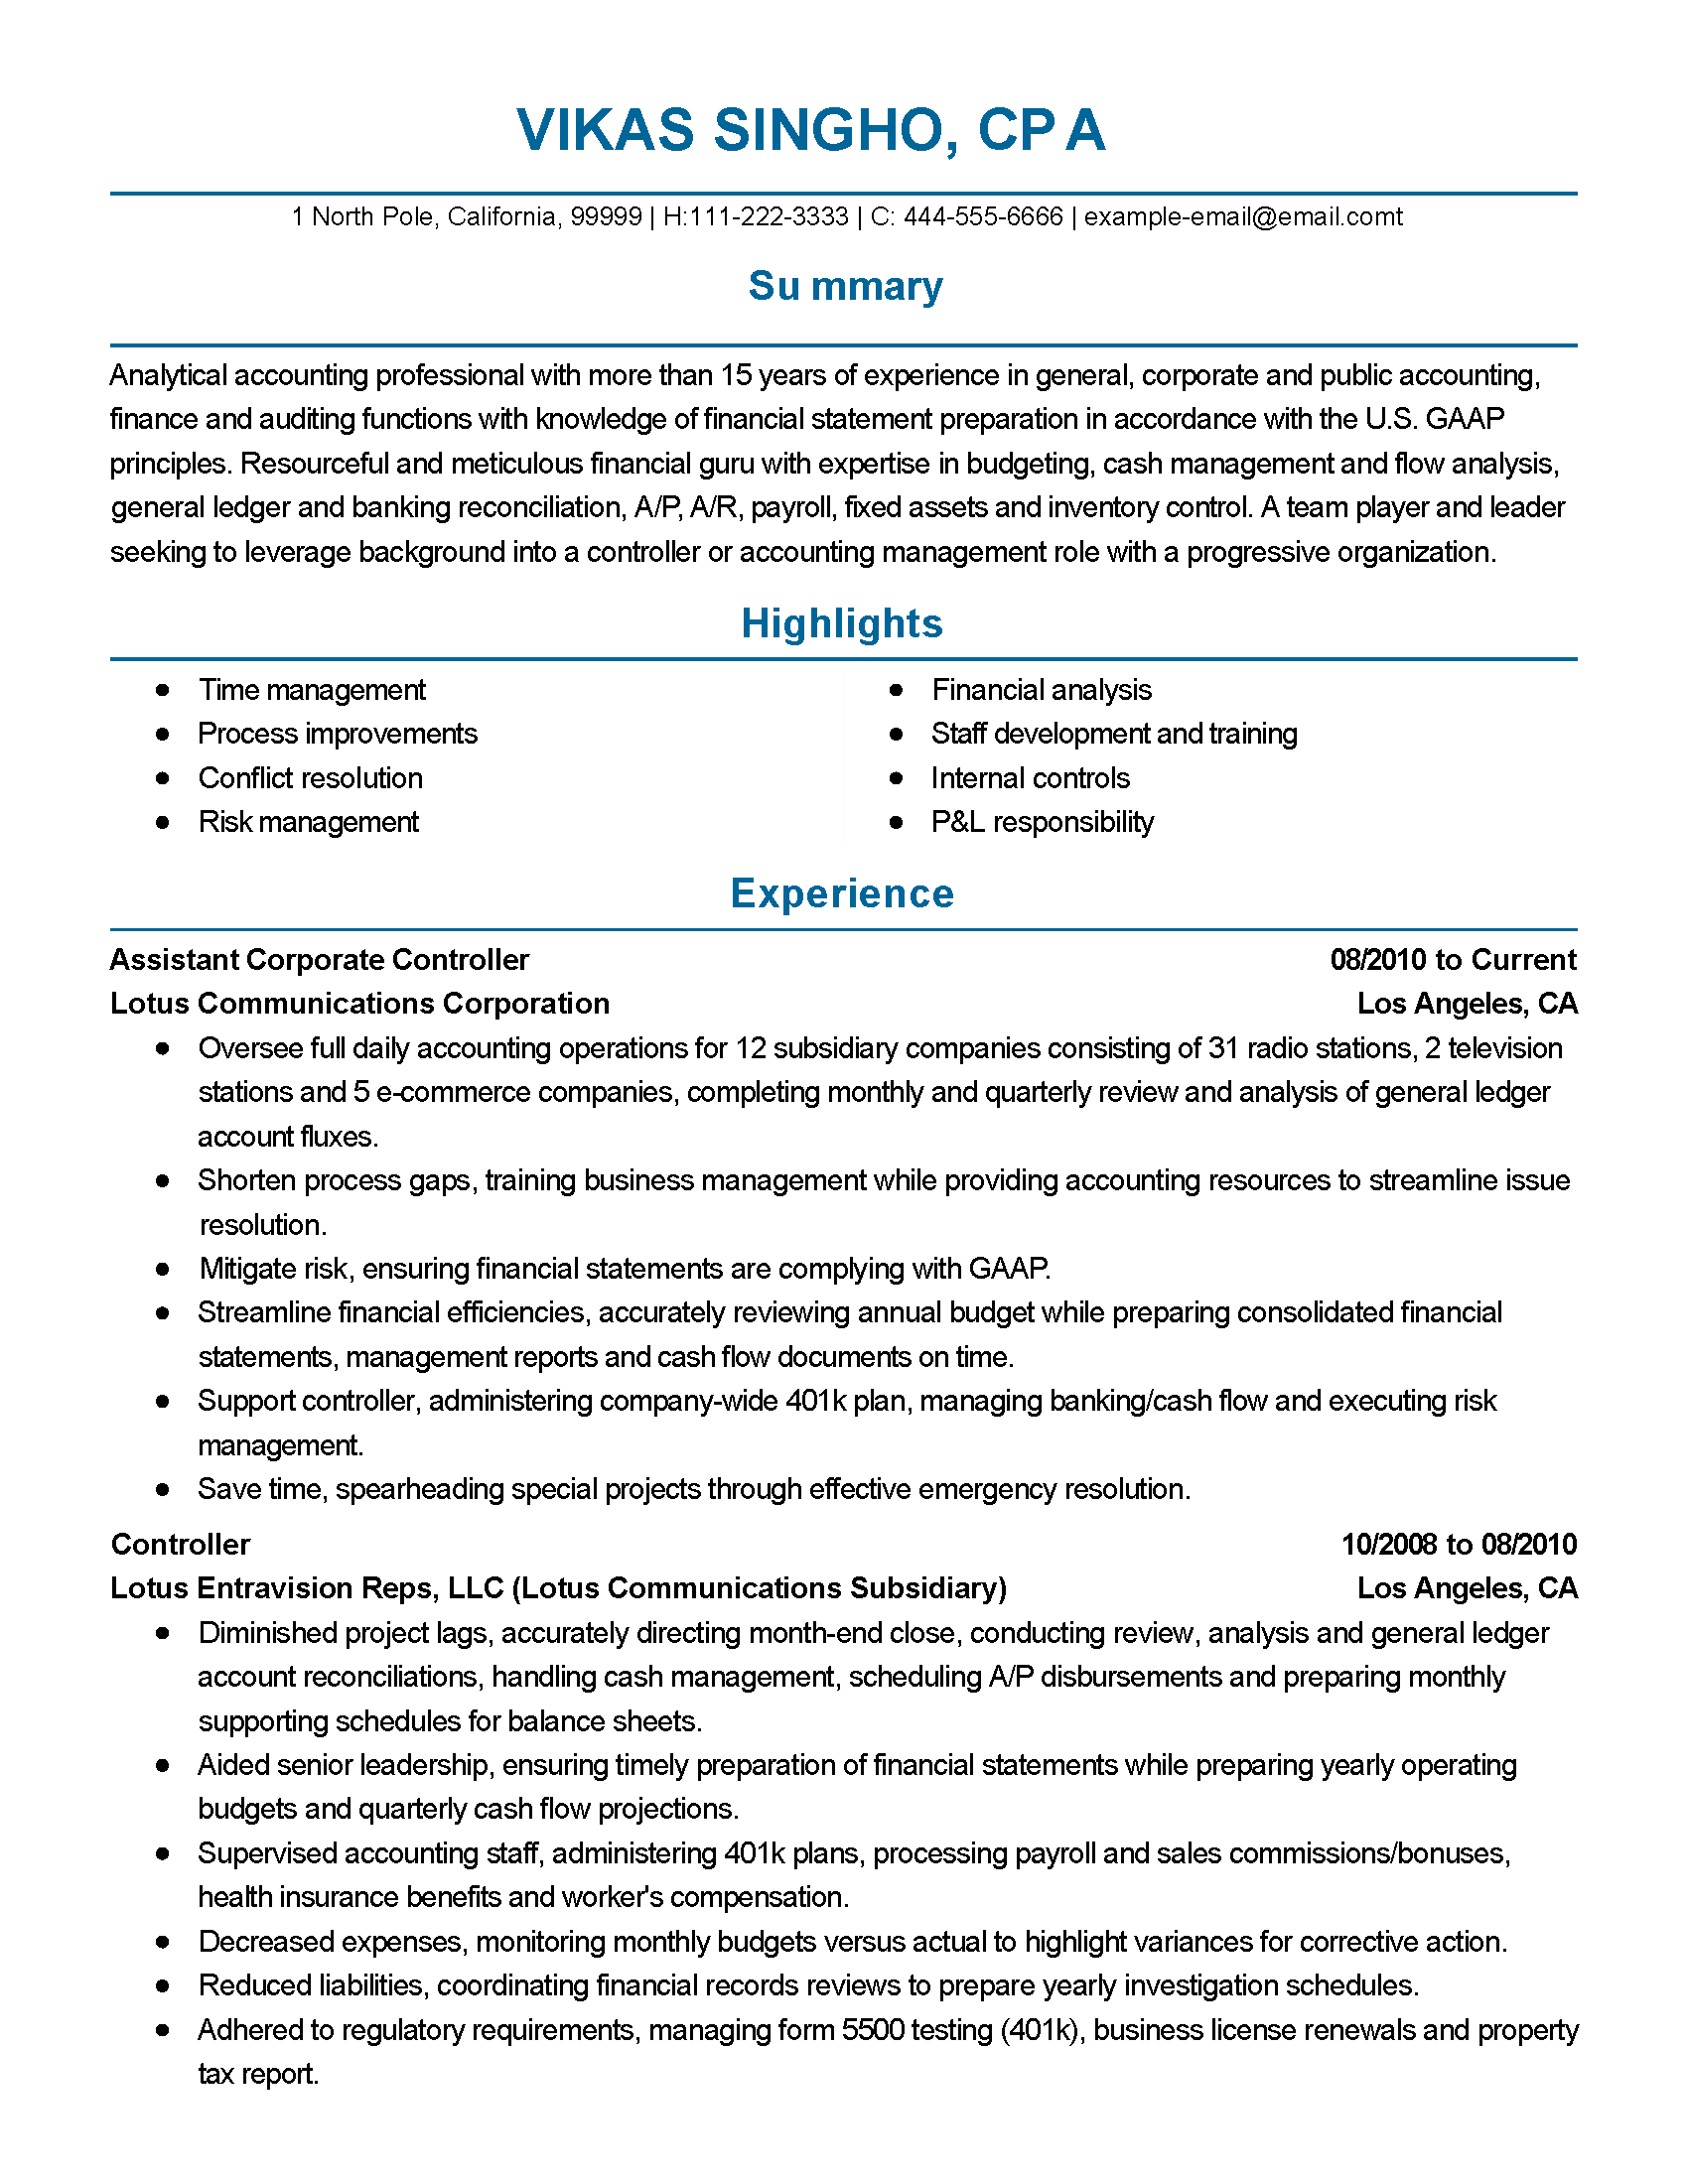 Professional Accounting Resume Templates Professional Assistant Corporate Controller Templates To